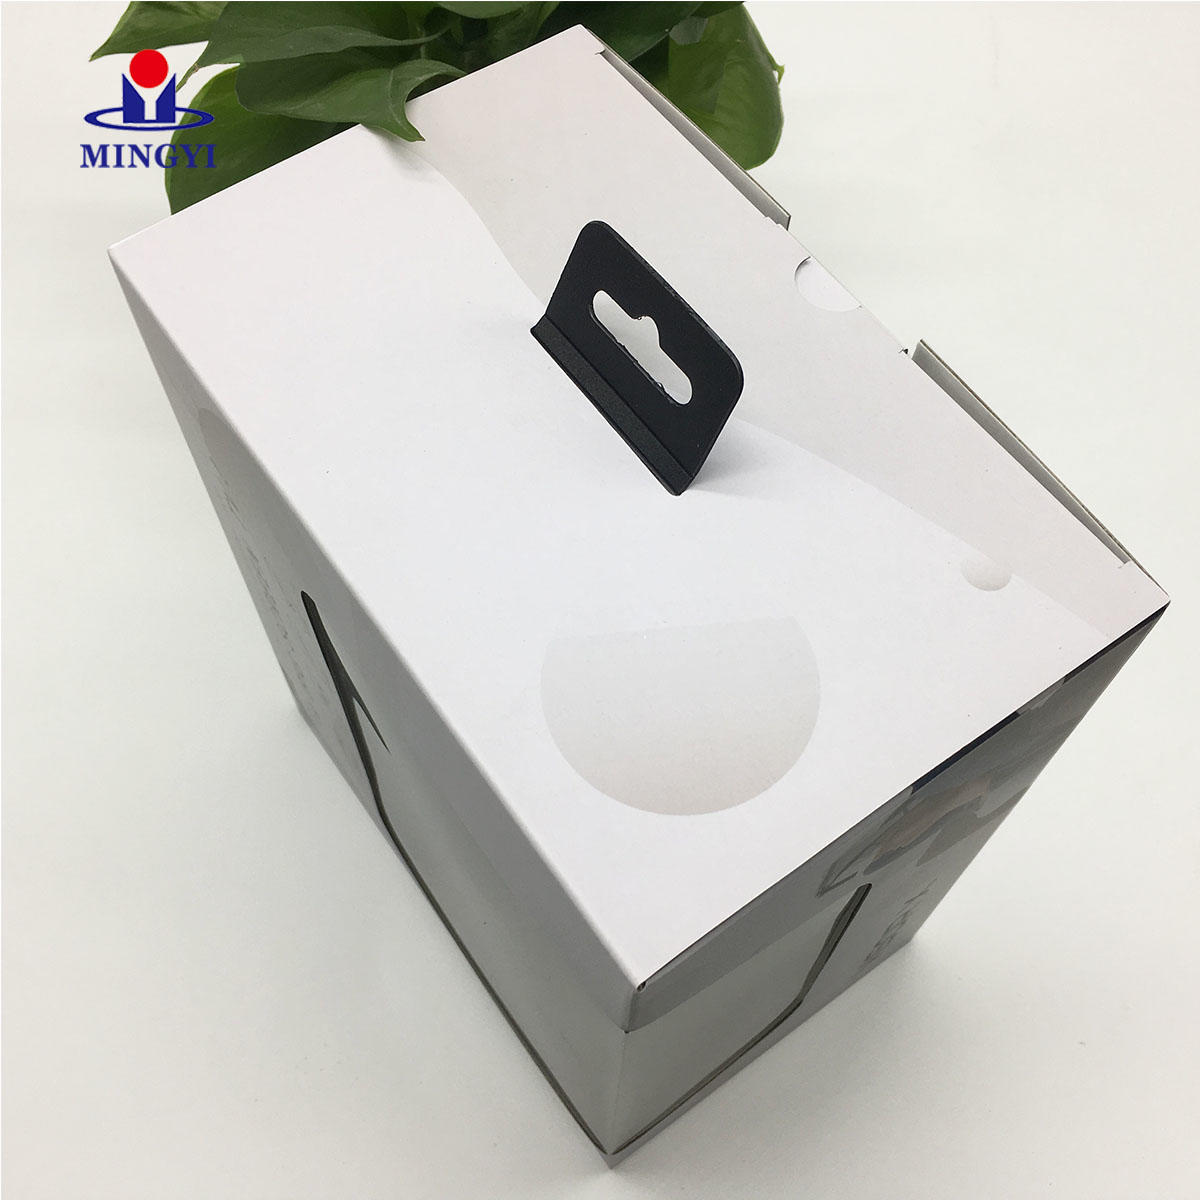 Kraft Box Craft Gift Recycled for Flower Corrugated Black Luxury with Window Carton Manufacturer with Handle Cake Paper Boxes